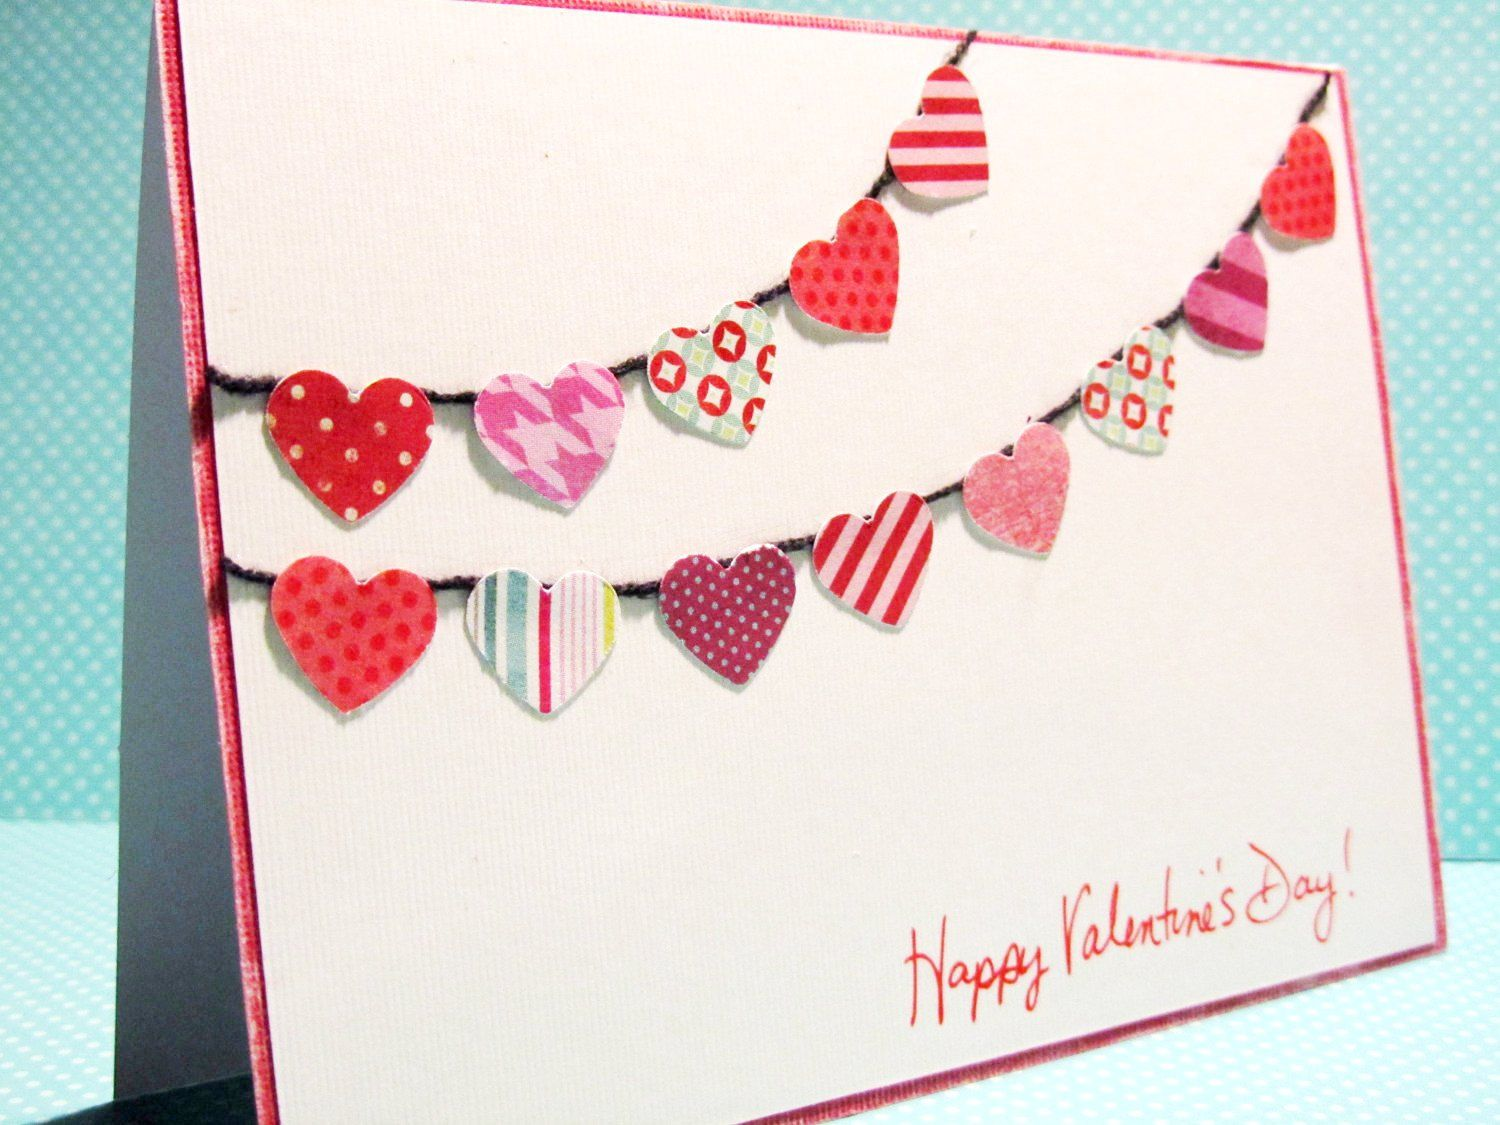 Handmade Thursday Valentines Day Card Tutorials – Valentine Handmade Card Ideas